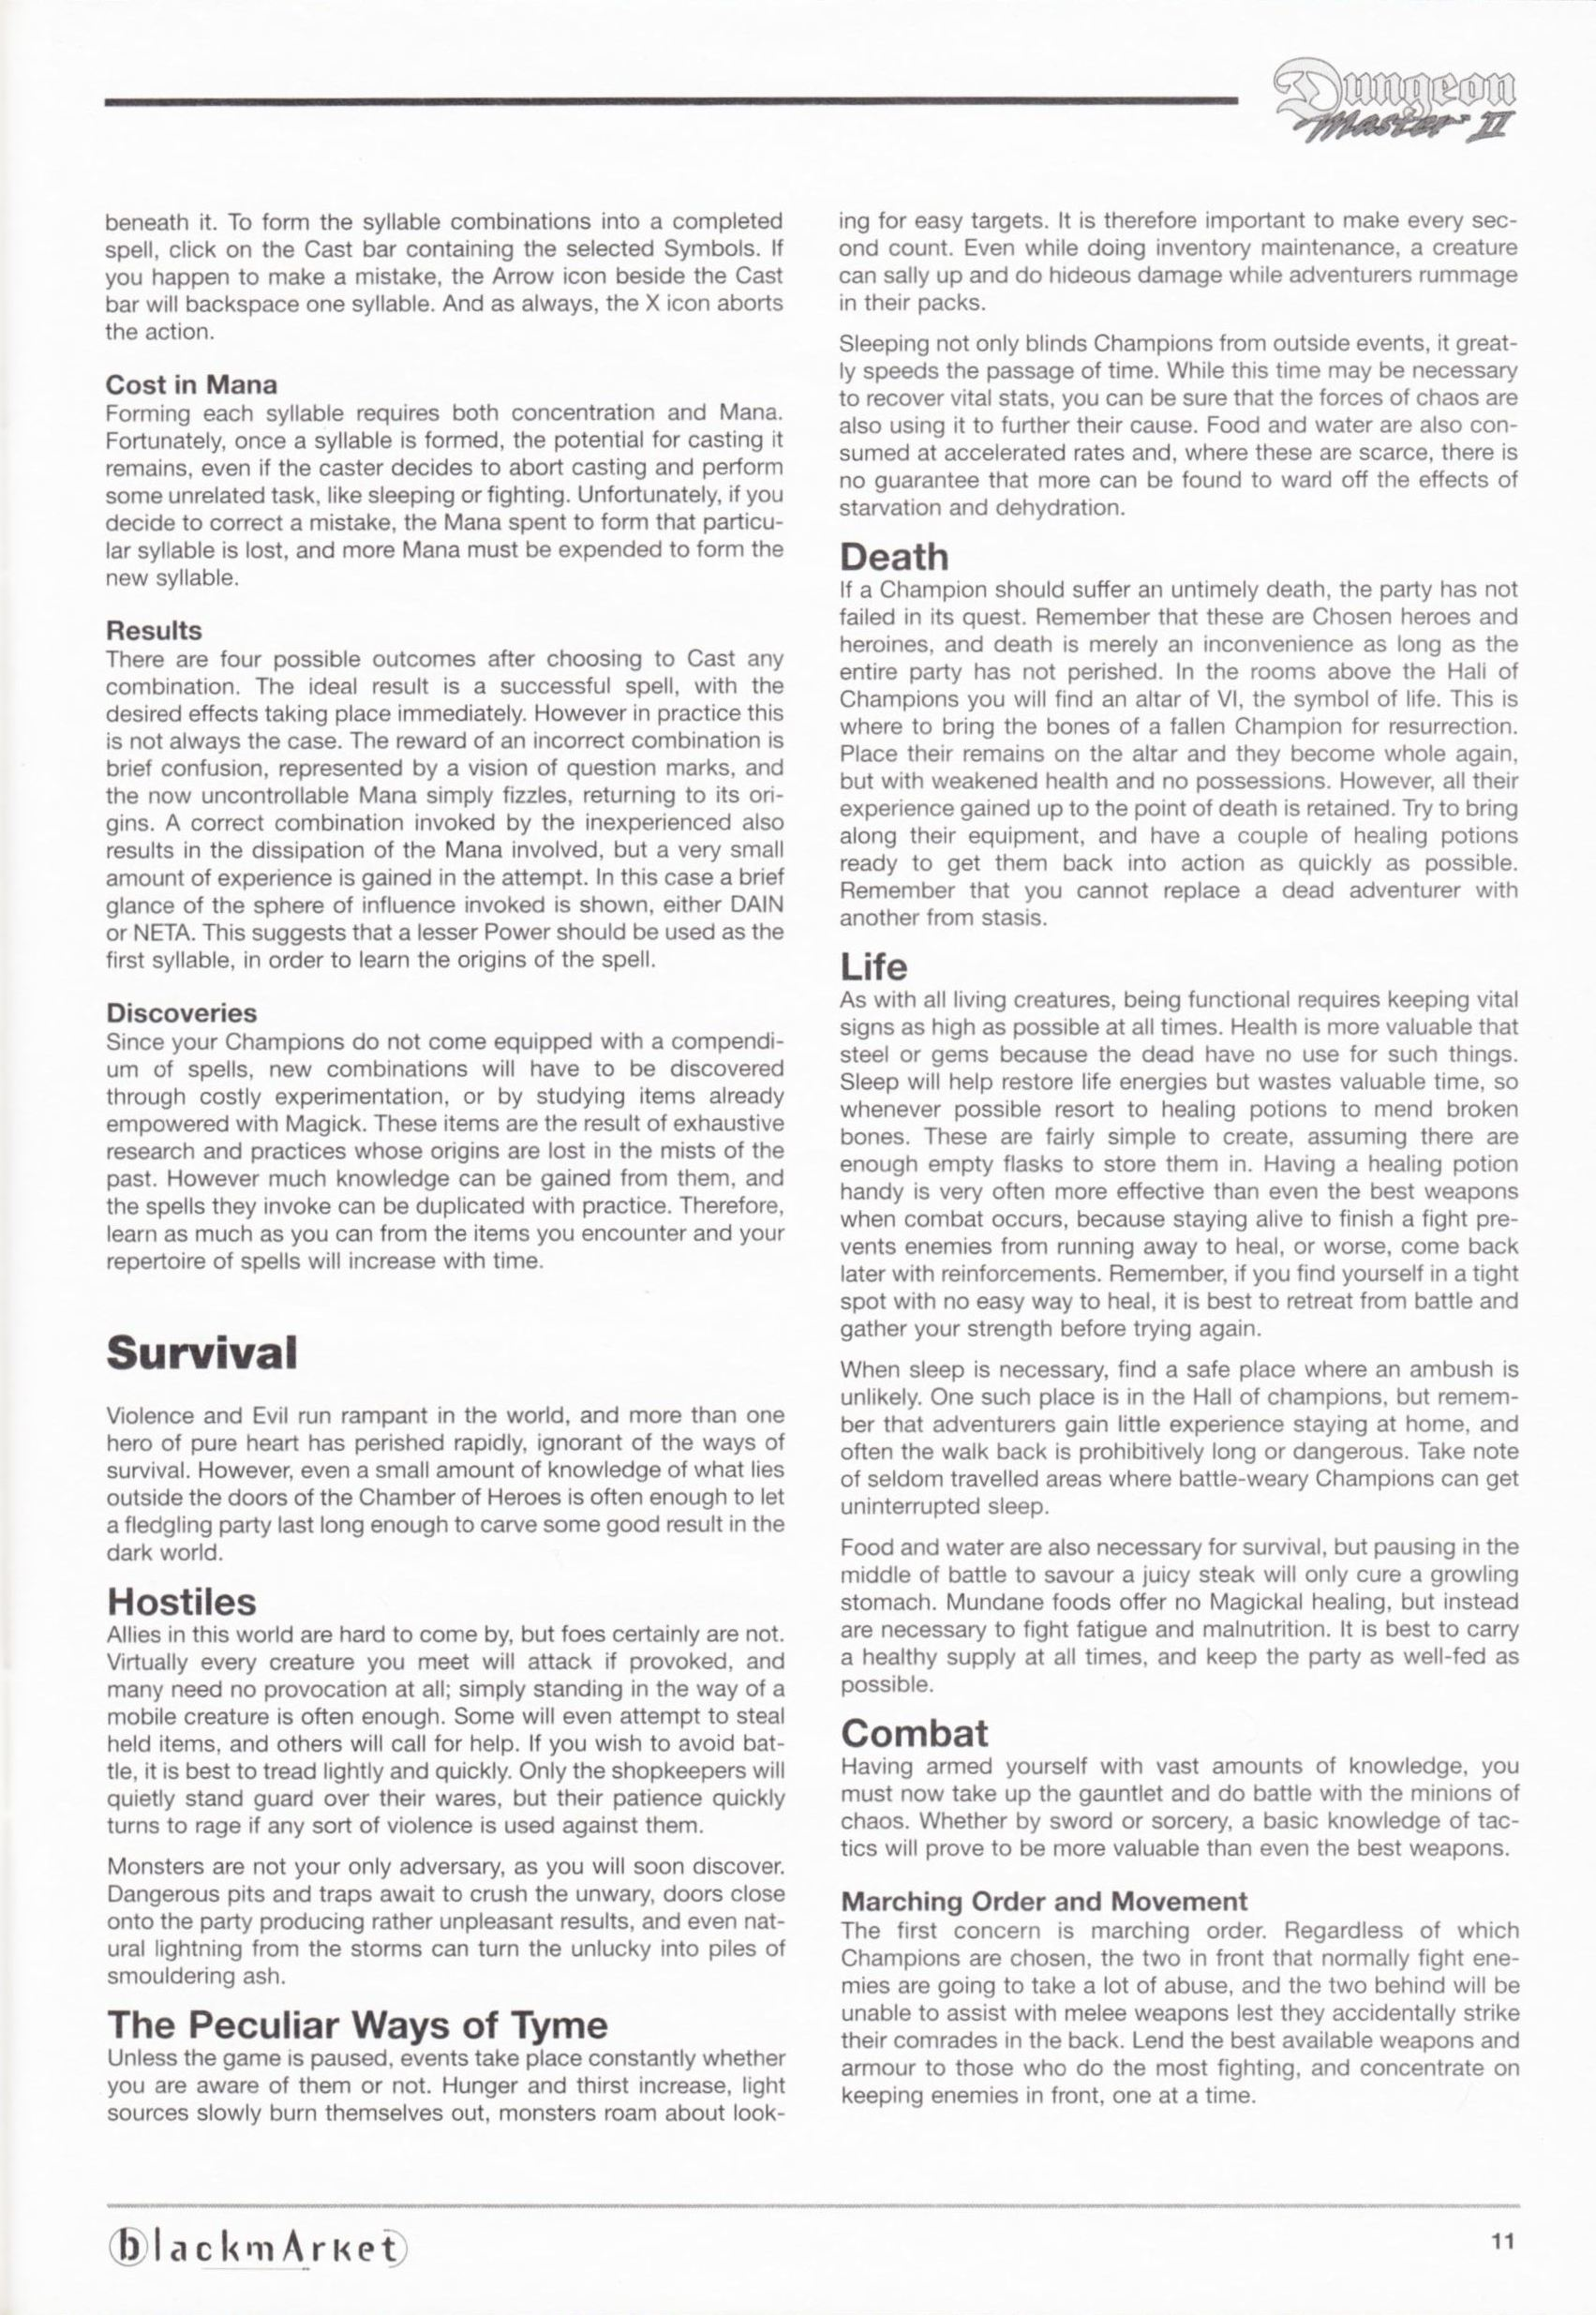 Game - Dungeon Master II - DE - PC - Blackmarket With Manual - Manual - Page 013 - Scan